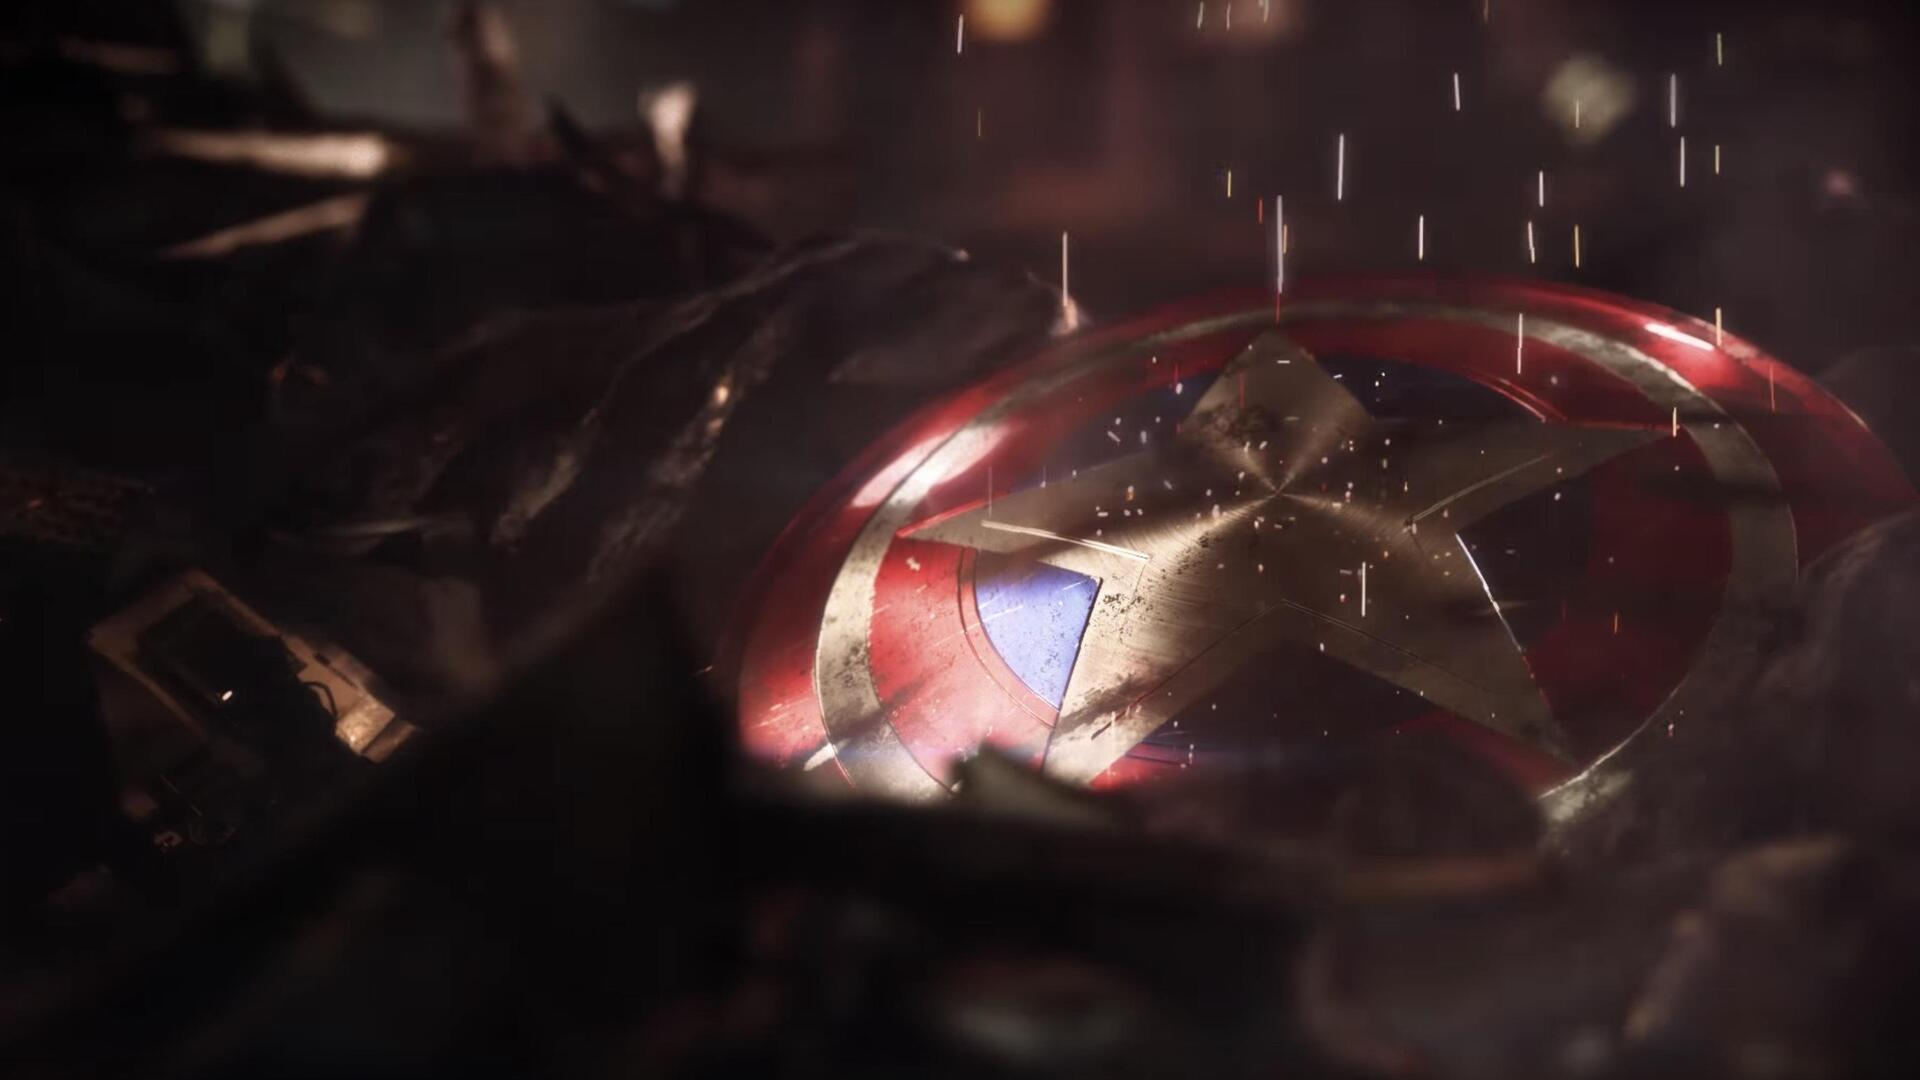 1920x1080 captain america shield 4k laptop full hd 1080p - Captain america hd images download ...